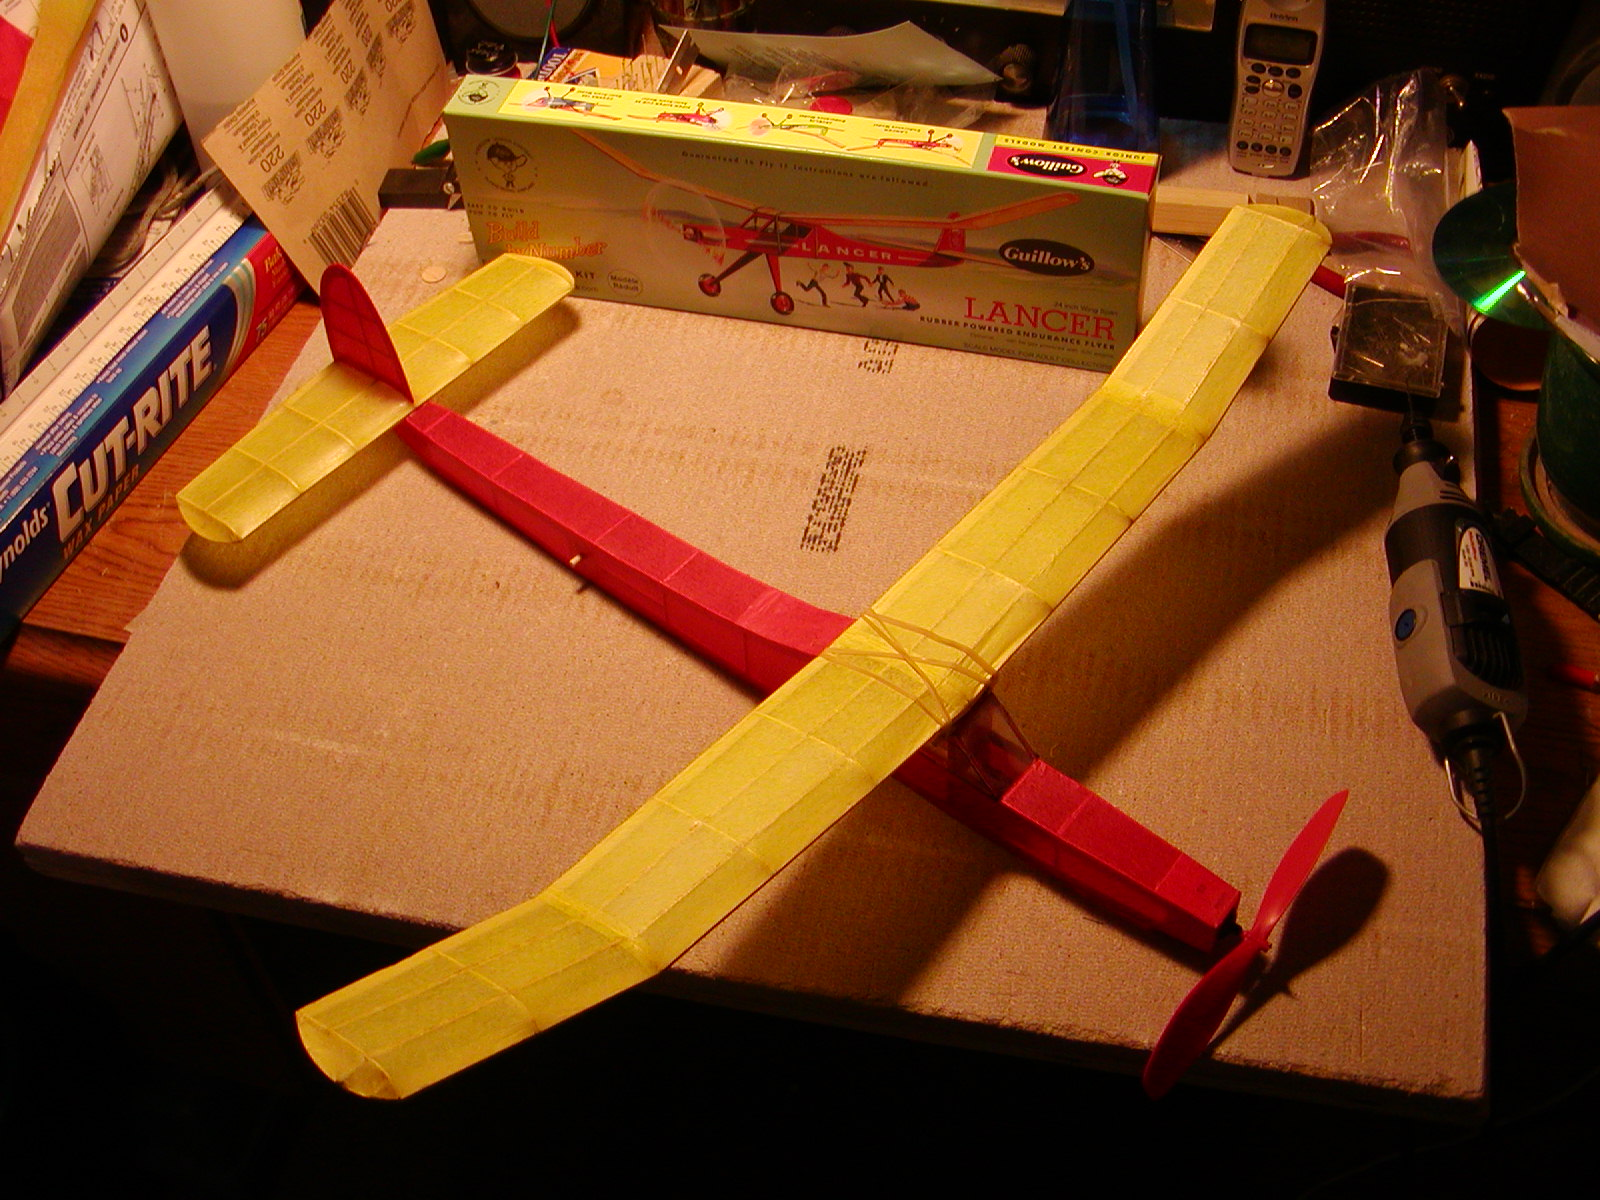 Covering a model airplane in Tissue